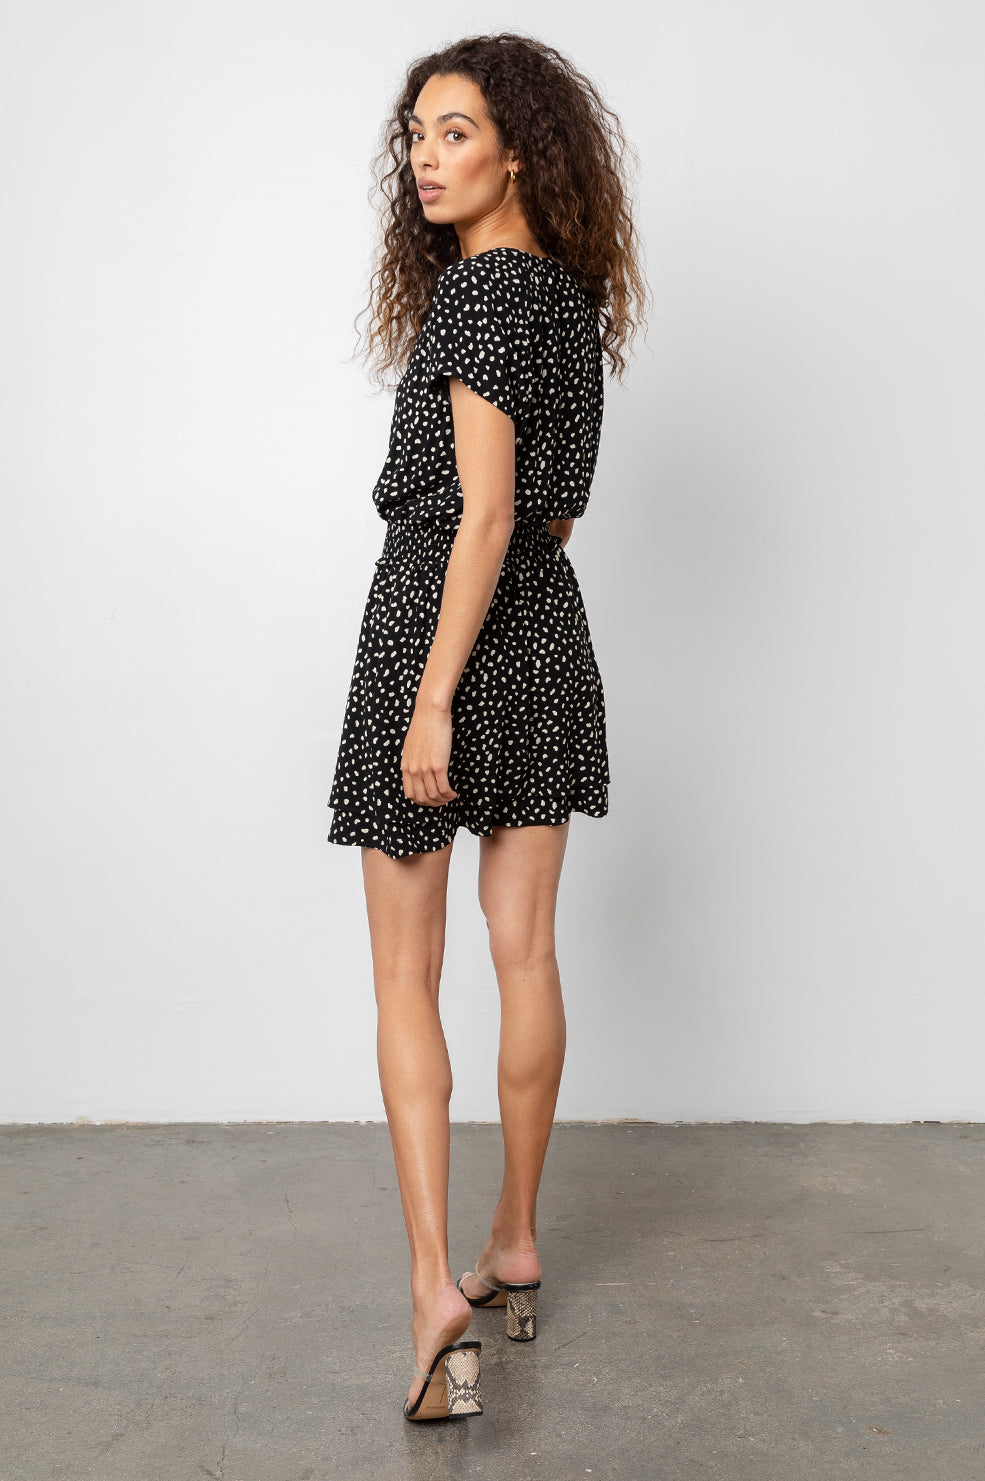 Karla Black Ivory Spots, Women's Short Sleeve Dress